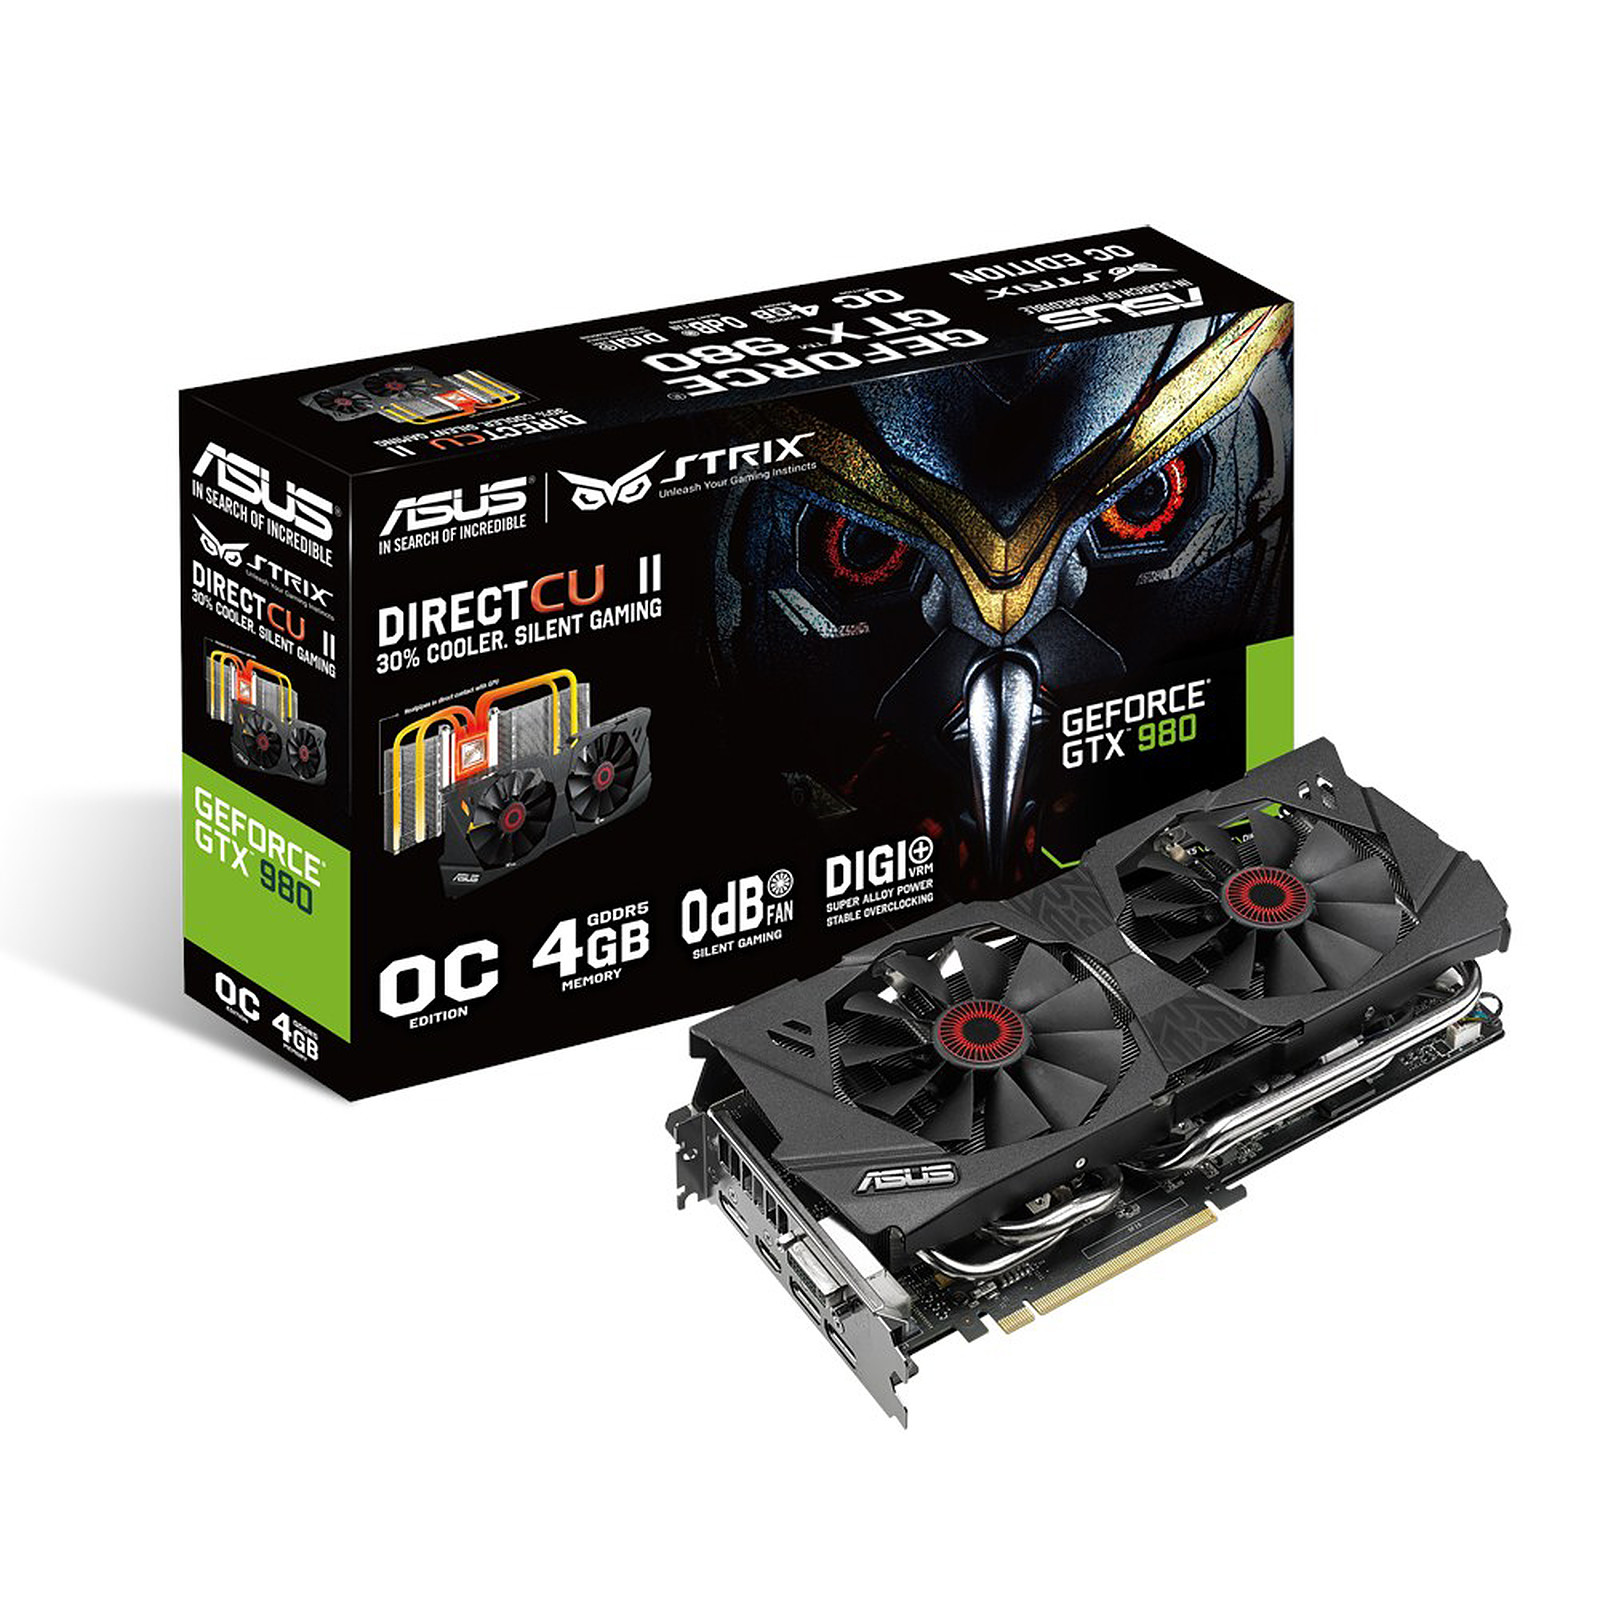 ASUS STRIX-GTX980-DC2OC-4GD5 - GeForce GTX 980 4 Go